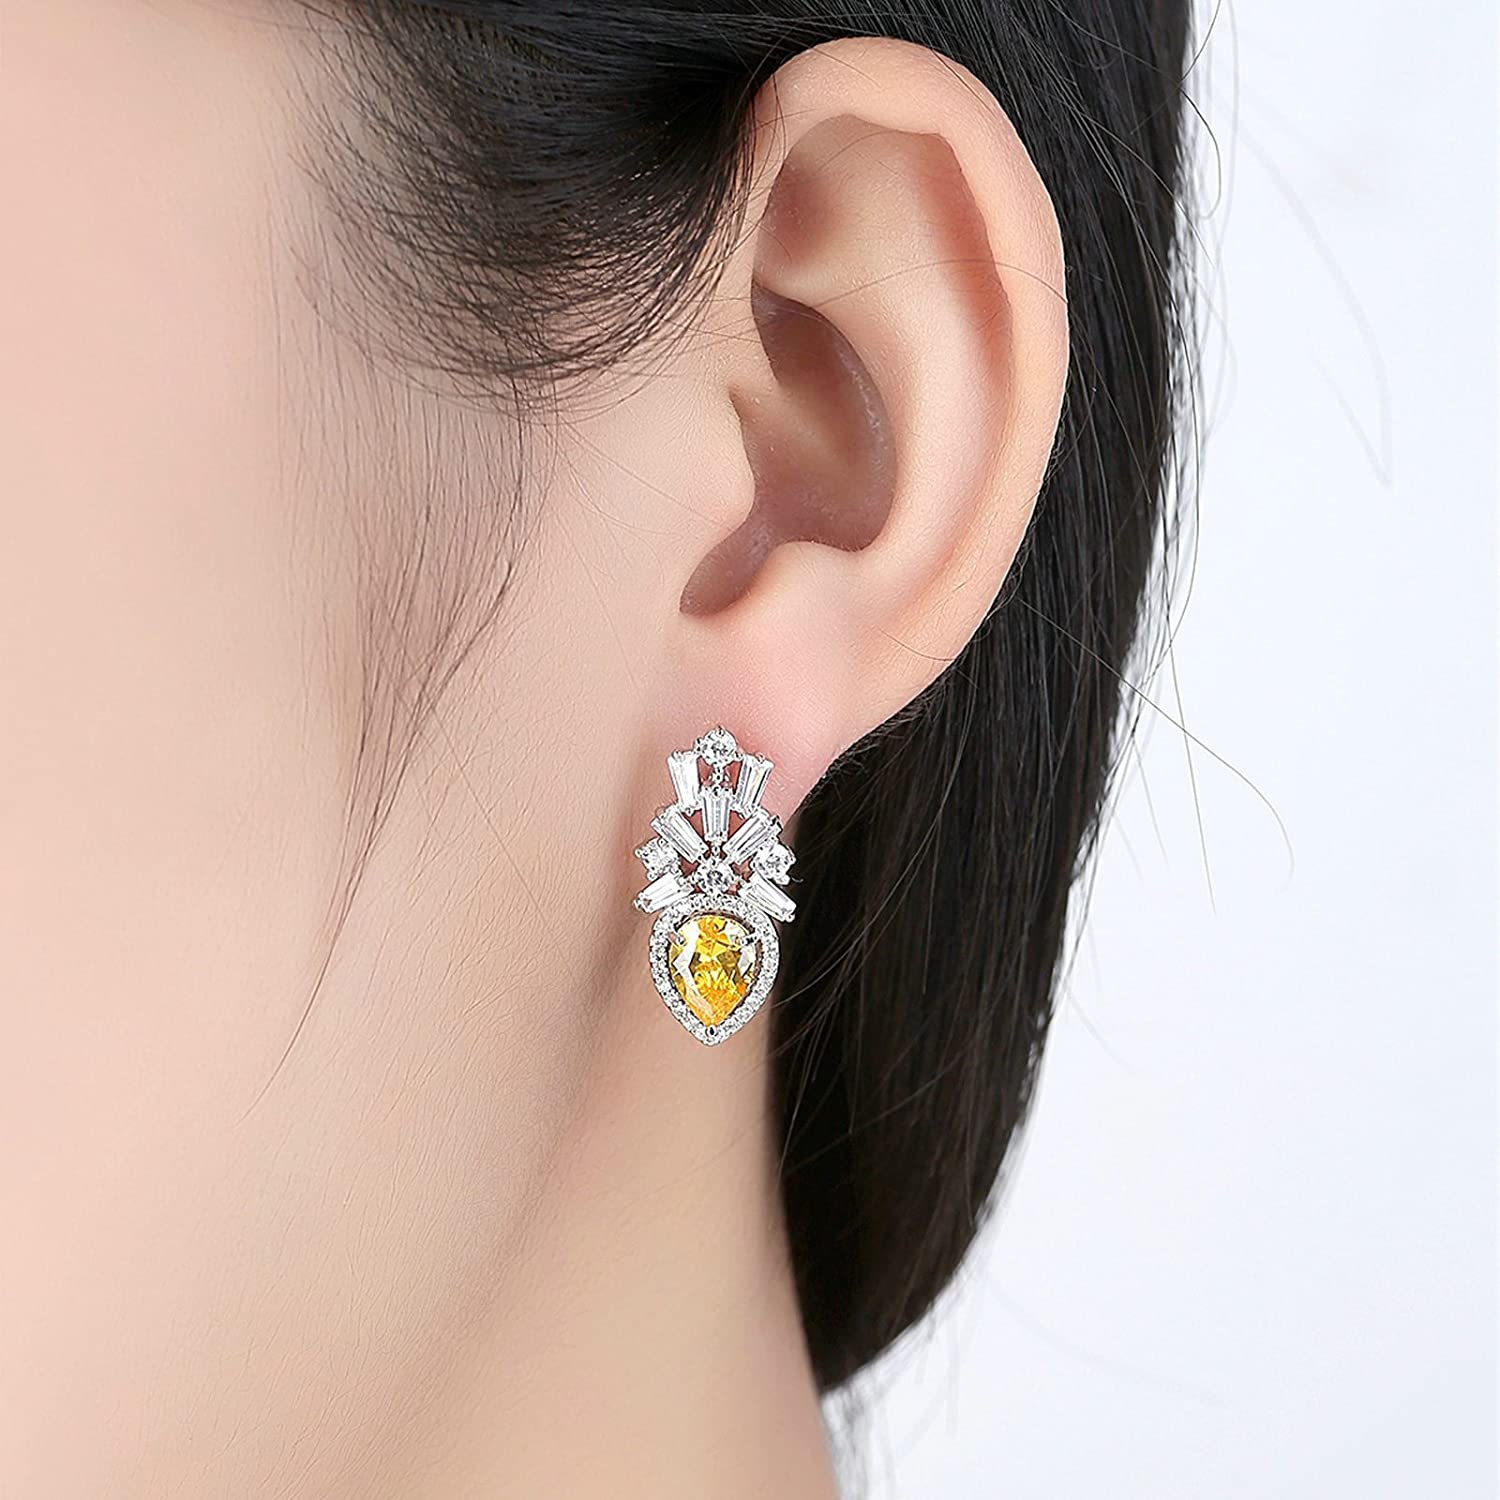 Beydodo Dangle Earrings for Girls Wedding Earring for Bridesmaids Pear and Round Cut Cubic Zirconia